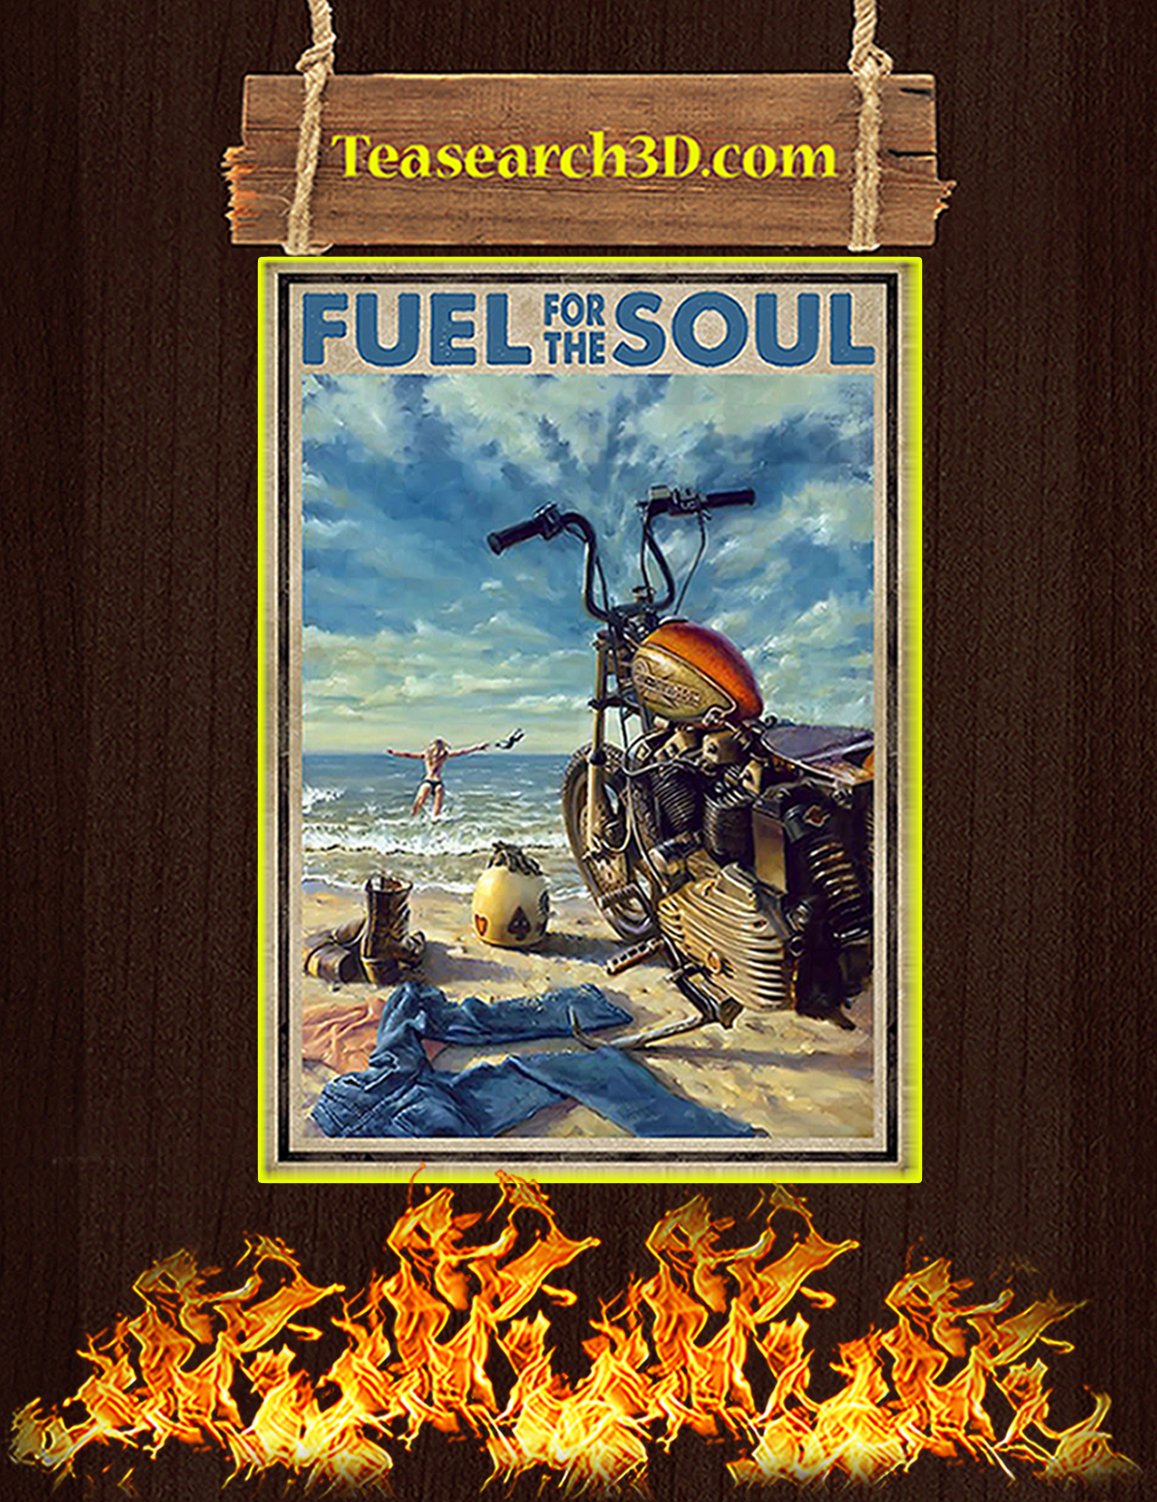 Biker girl fuel for the soul poster A3